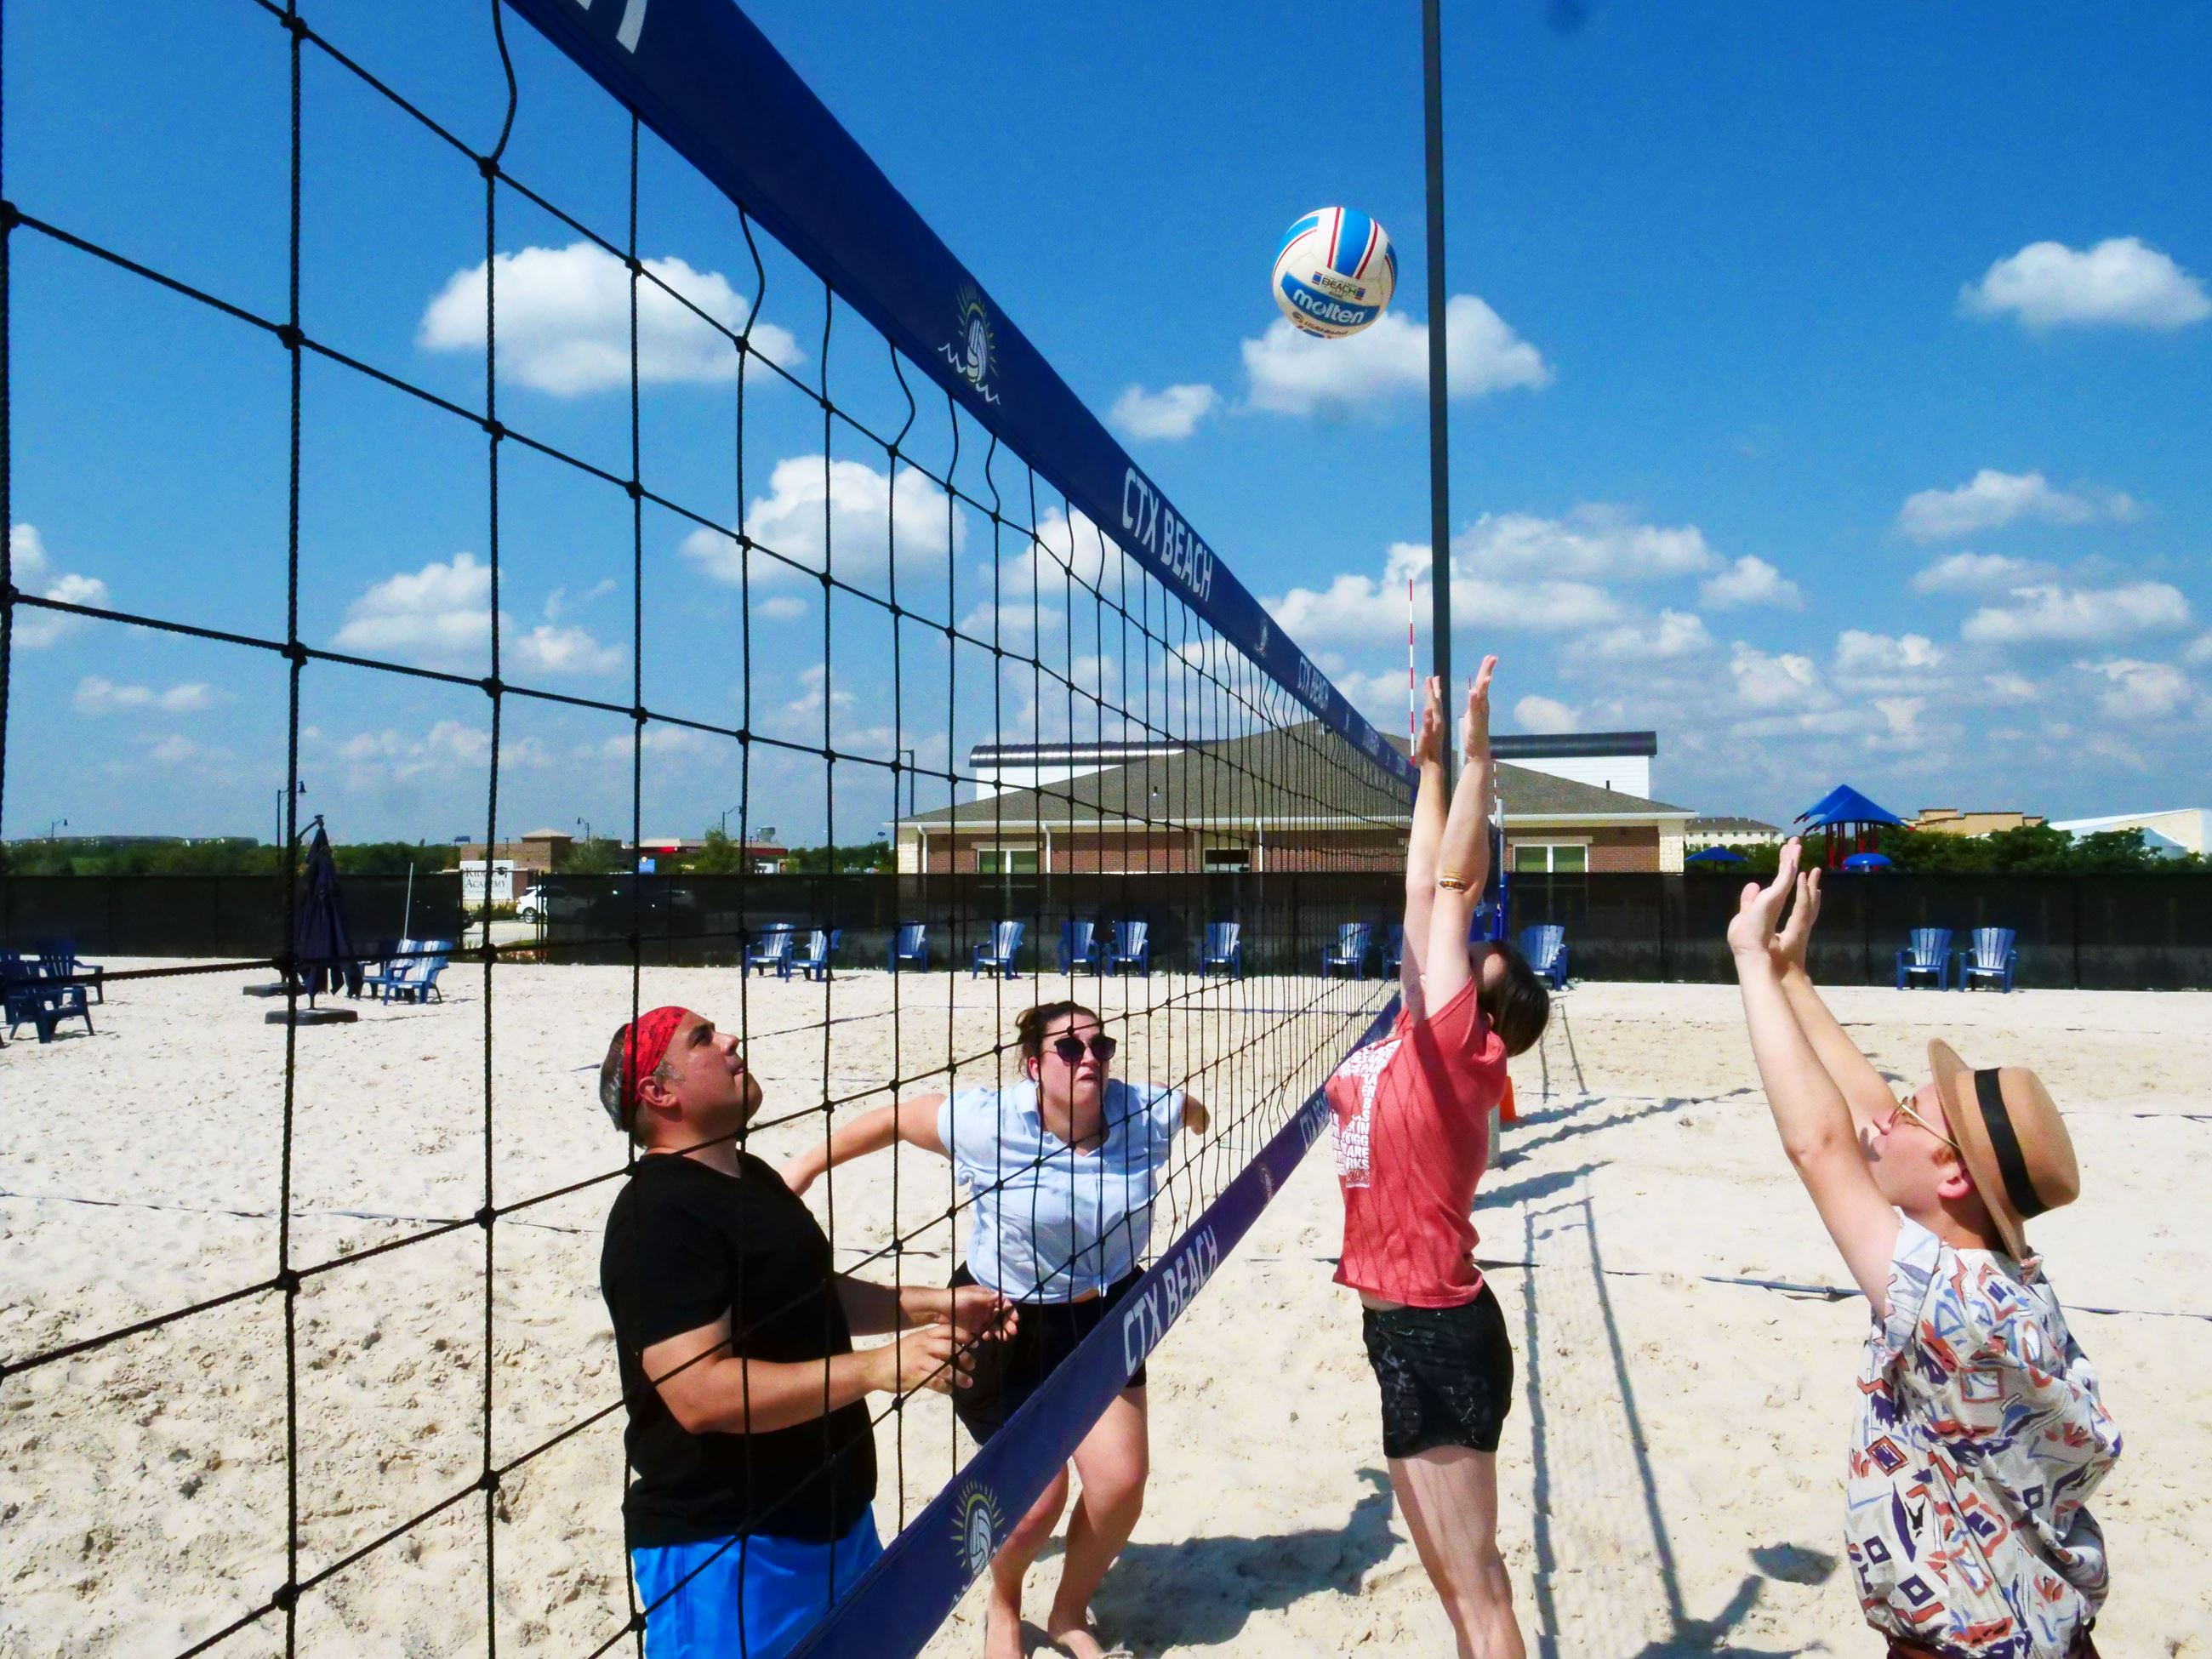 4 player jump for the ball at the net in sand volleyball courts